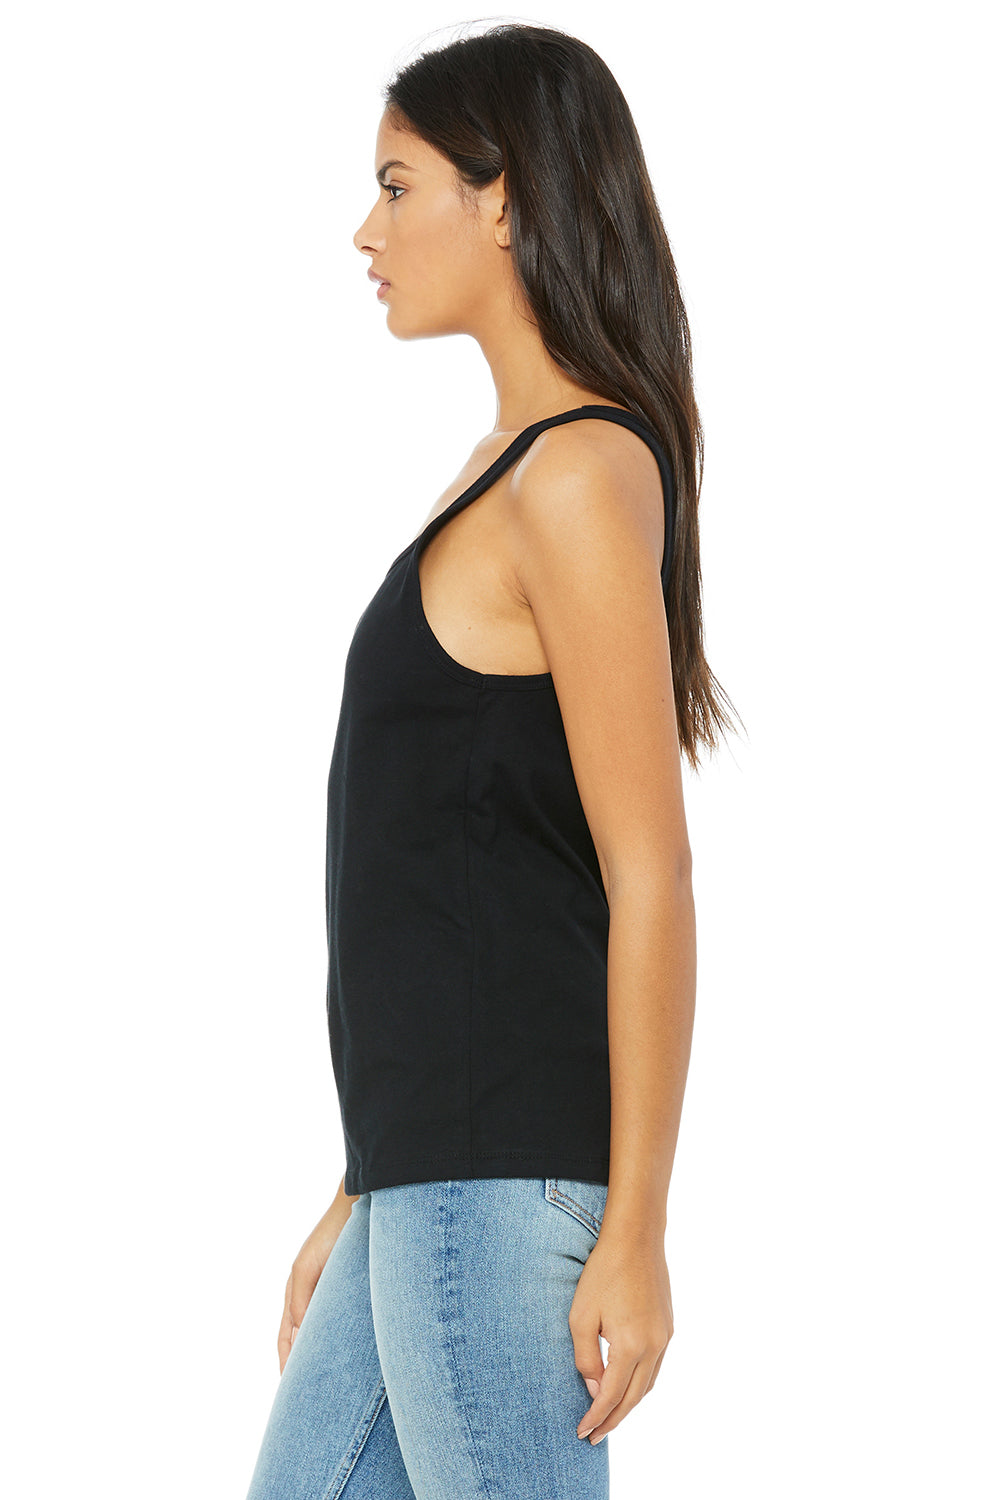 Bella + Canvas 6488 Womens Relaxed Jersey Tank Top Black Side